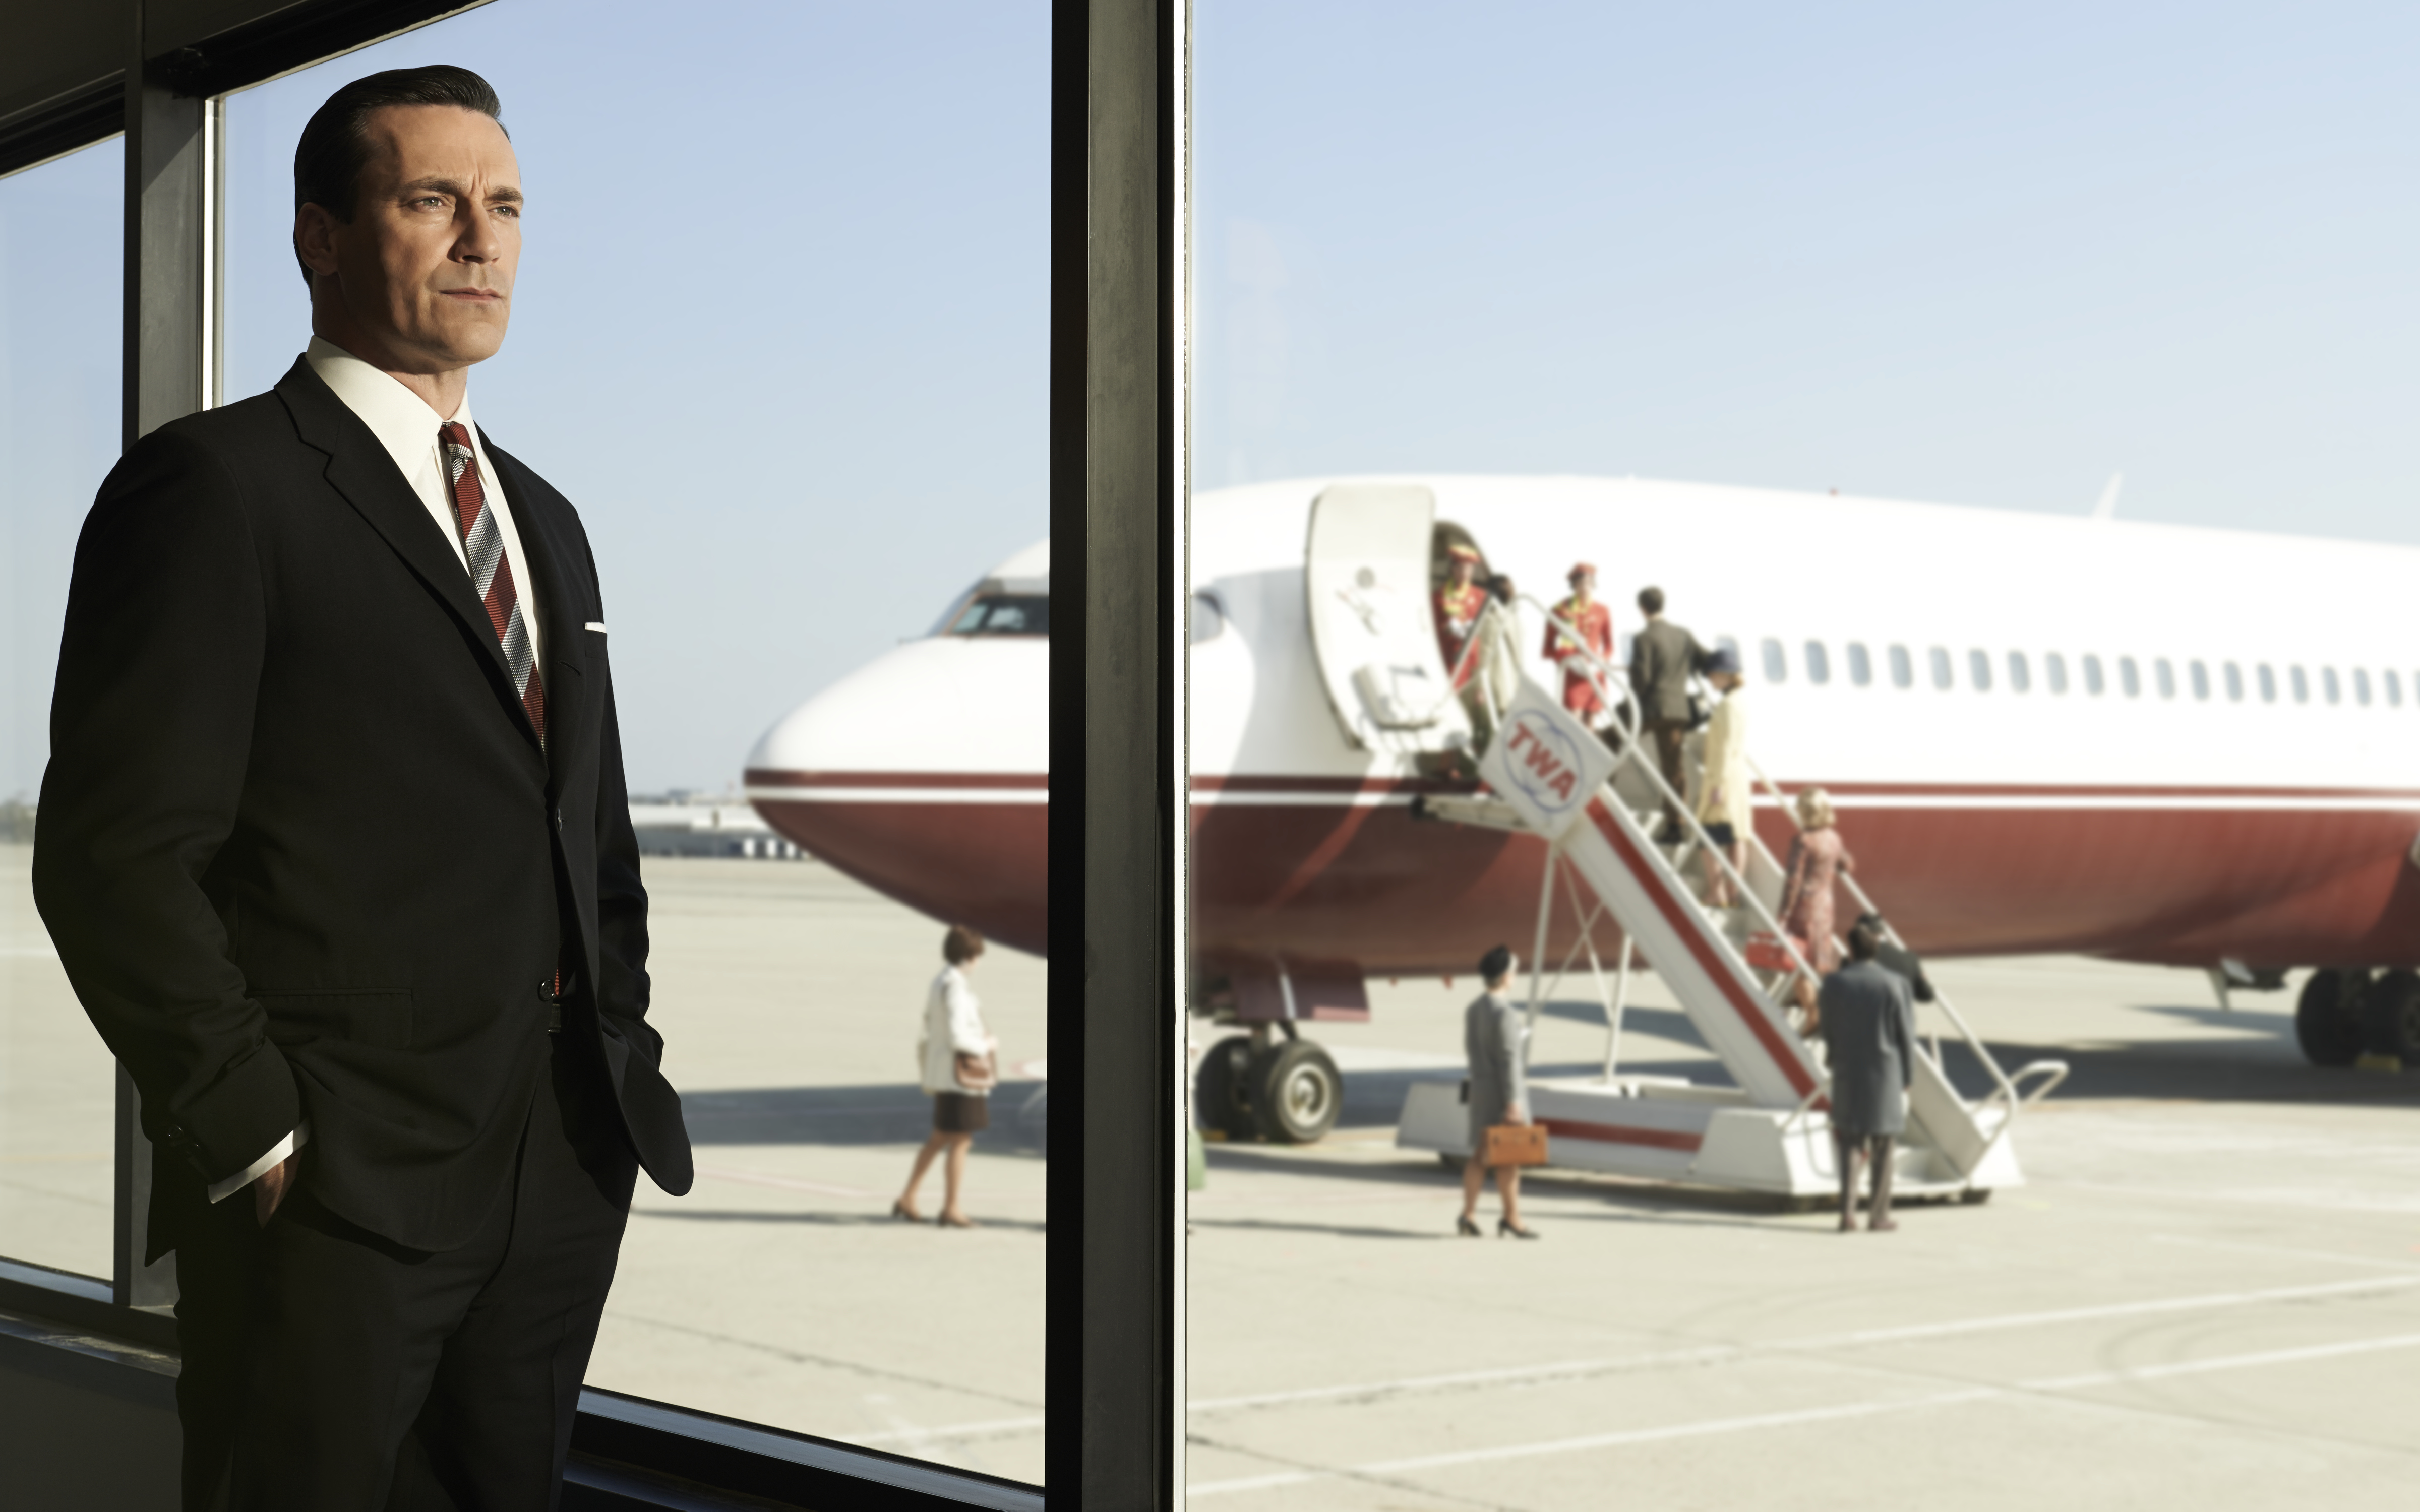 Mad-Men-Season-7-Jon-Hamm-as-Don-Draper